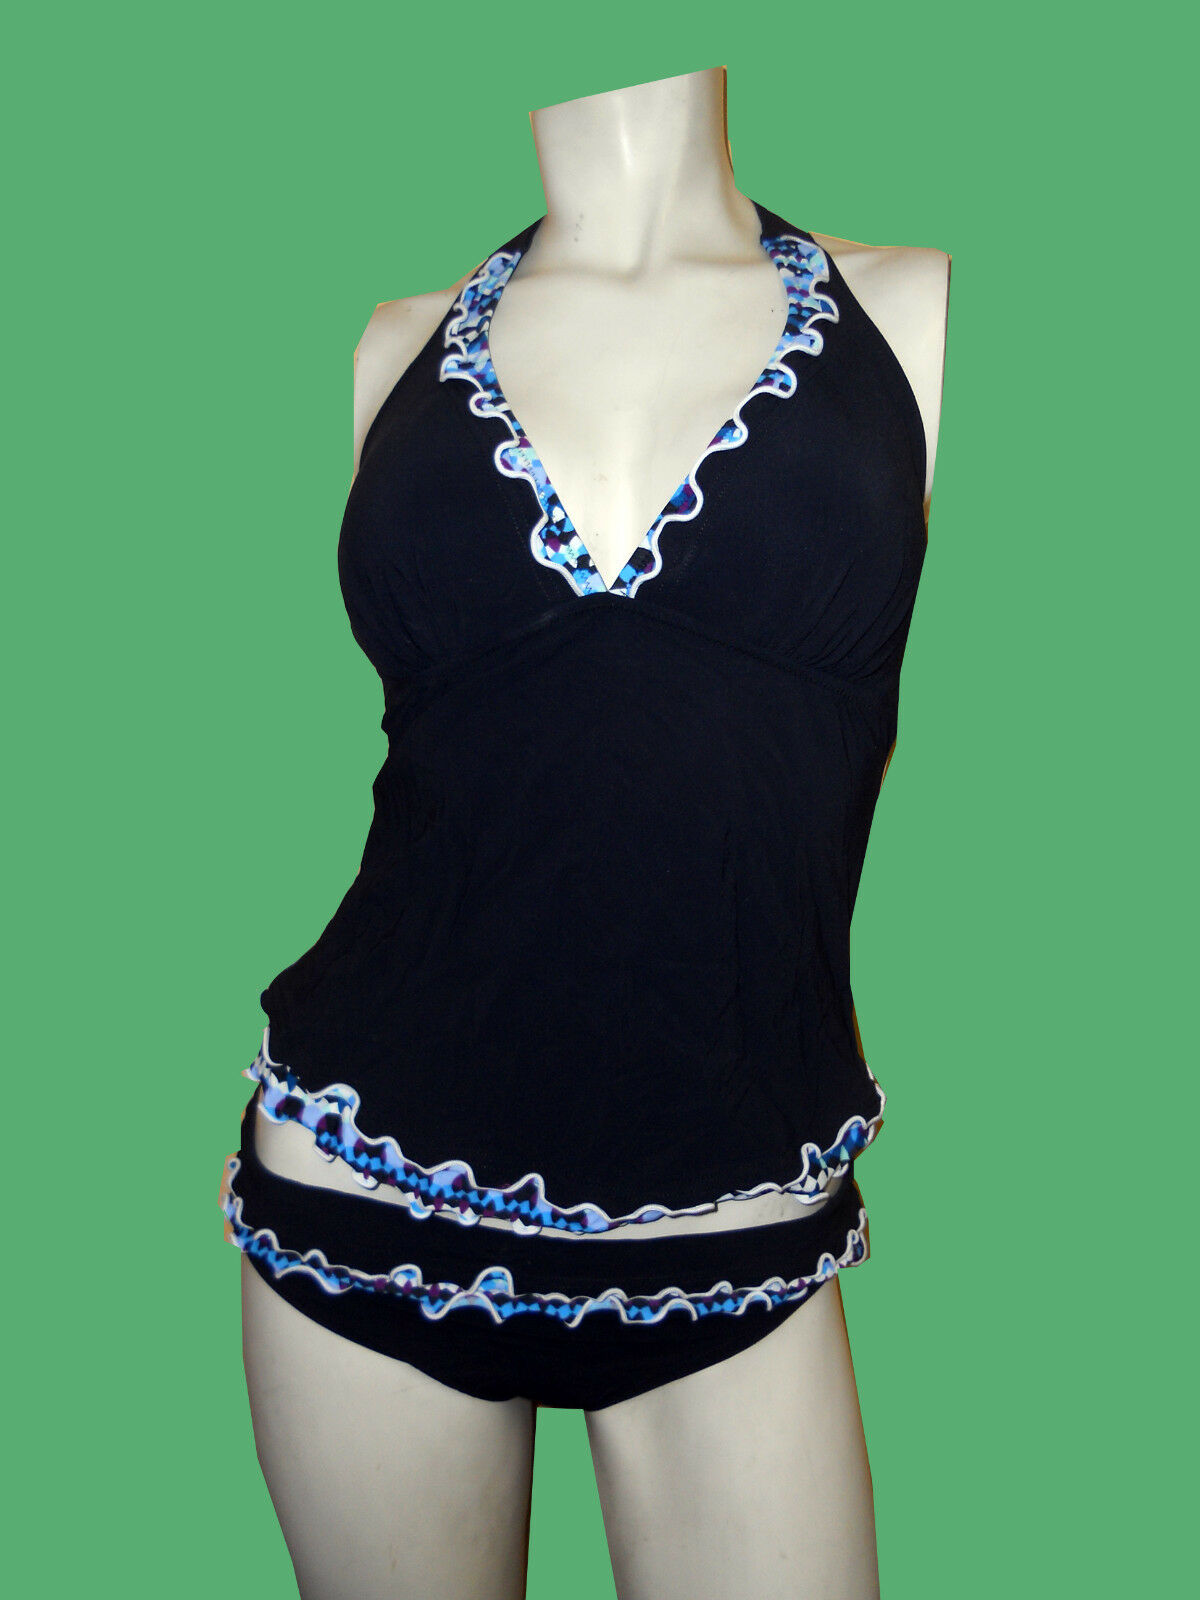 NWT PROFILE BY GOTTEX Kaleidoscope HALTER BATHING SUIT SUIT SUIT SWIMSUIT TANKINI SET - 6 fb718c